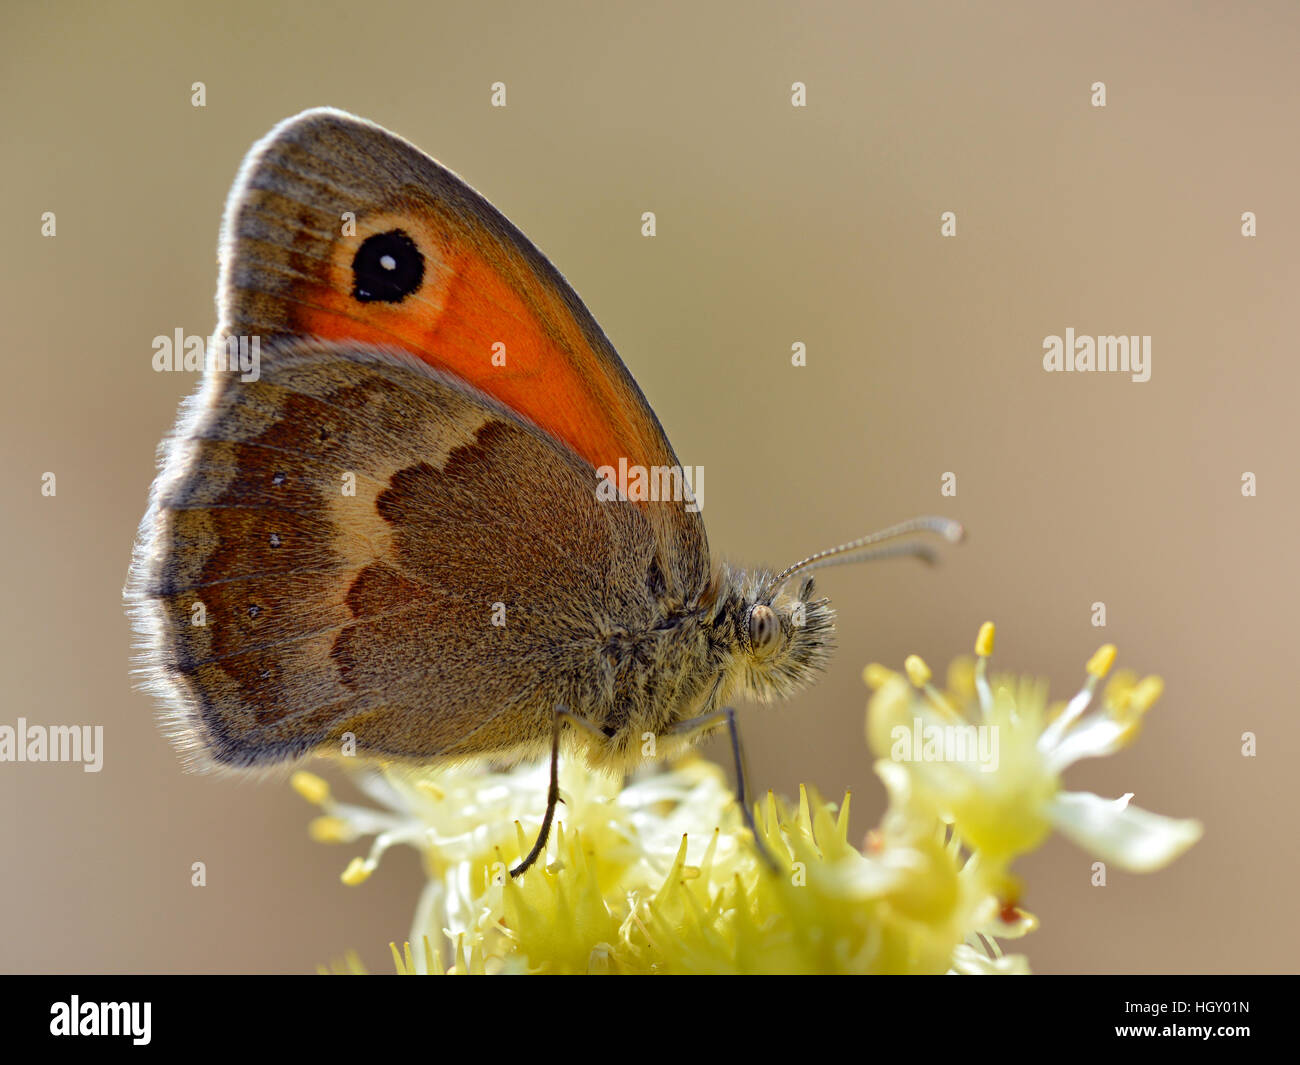 Closeup Small heath butterfly (Coenonympha pamphilus) on yellow flower viewed from profil on brown background - Stock Image